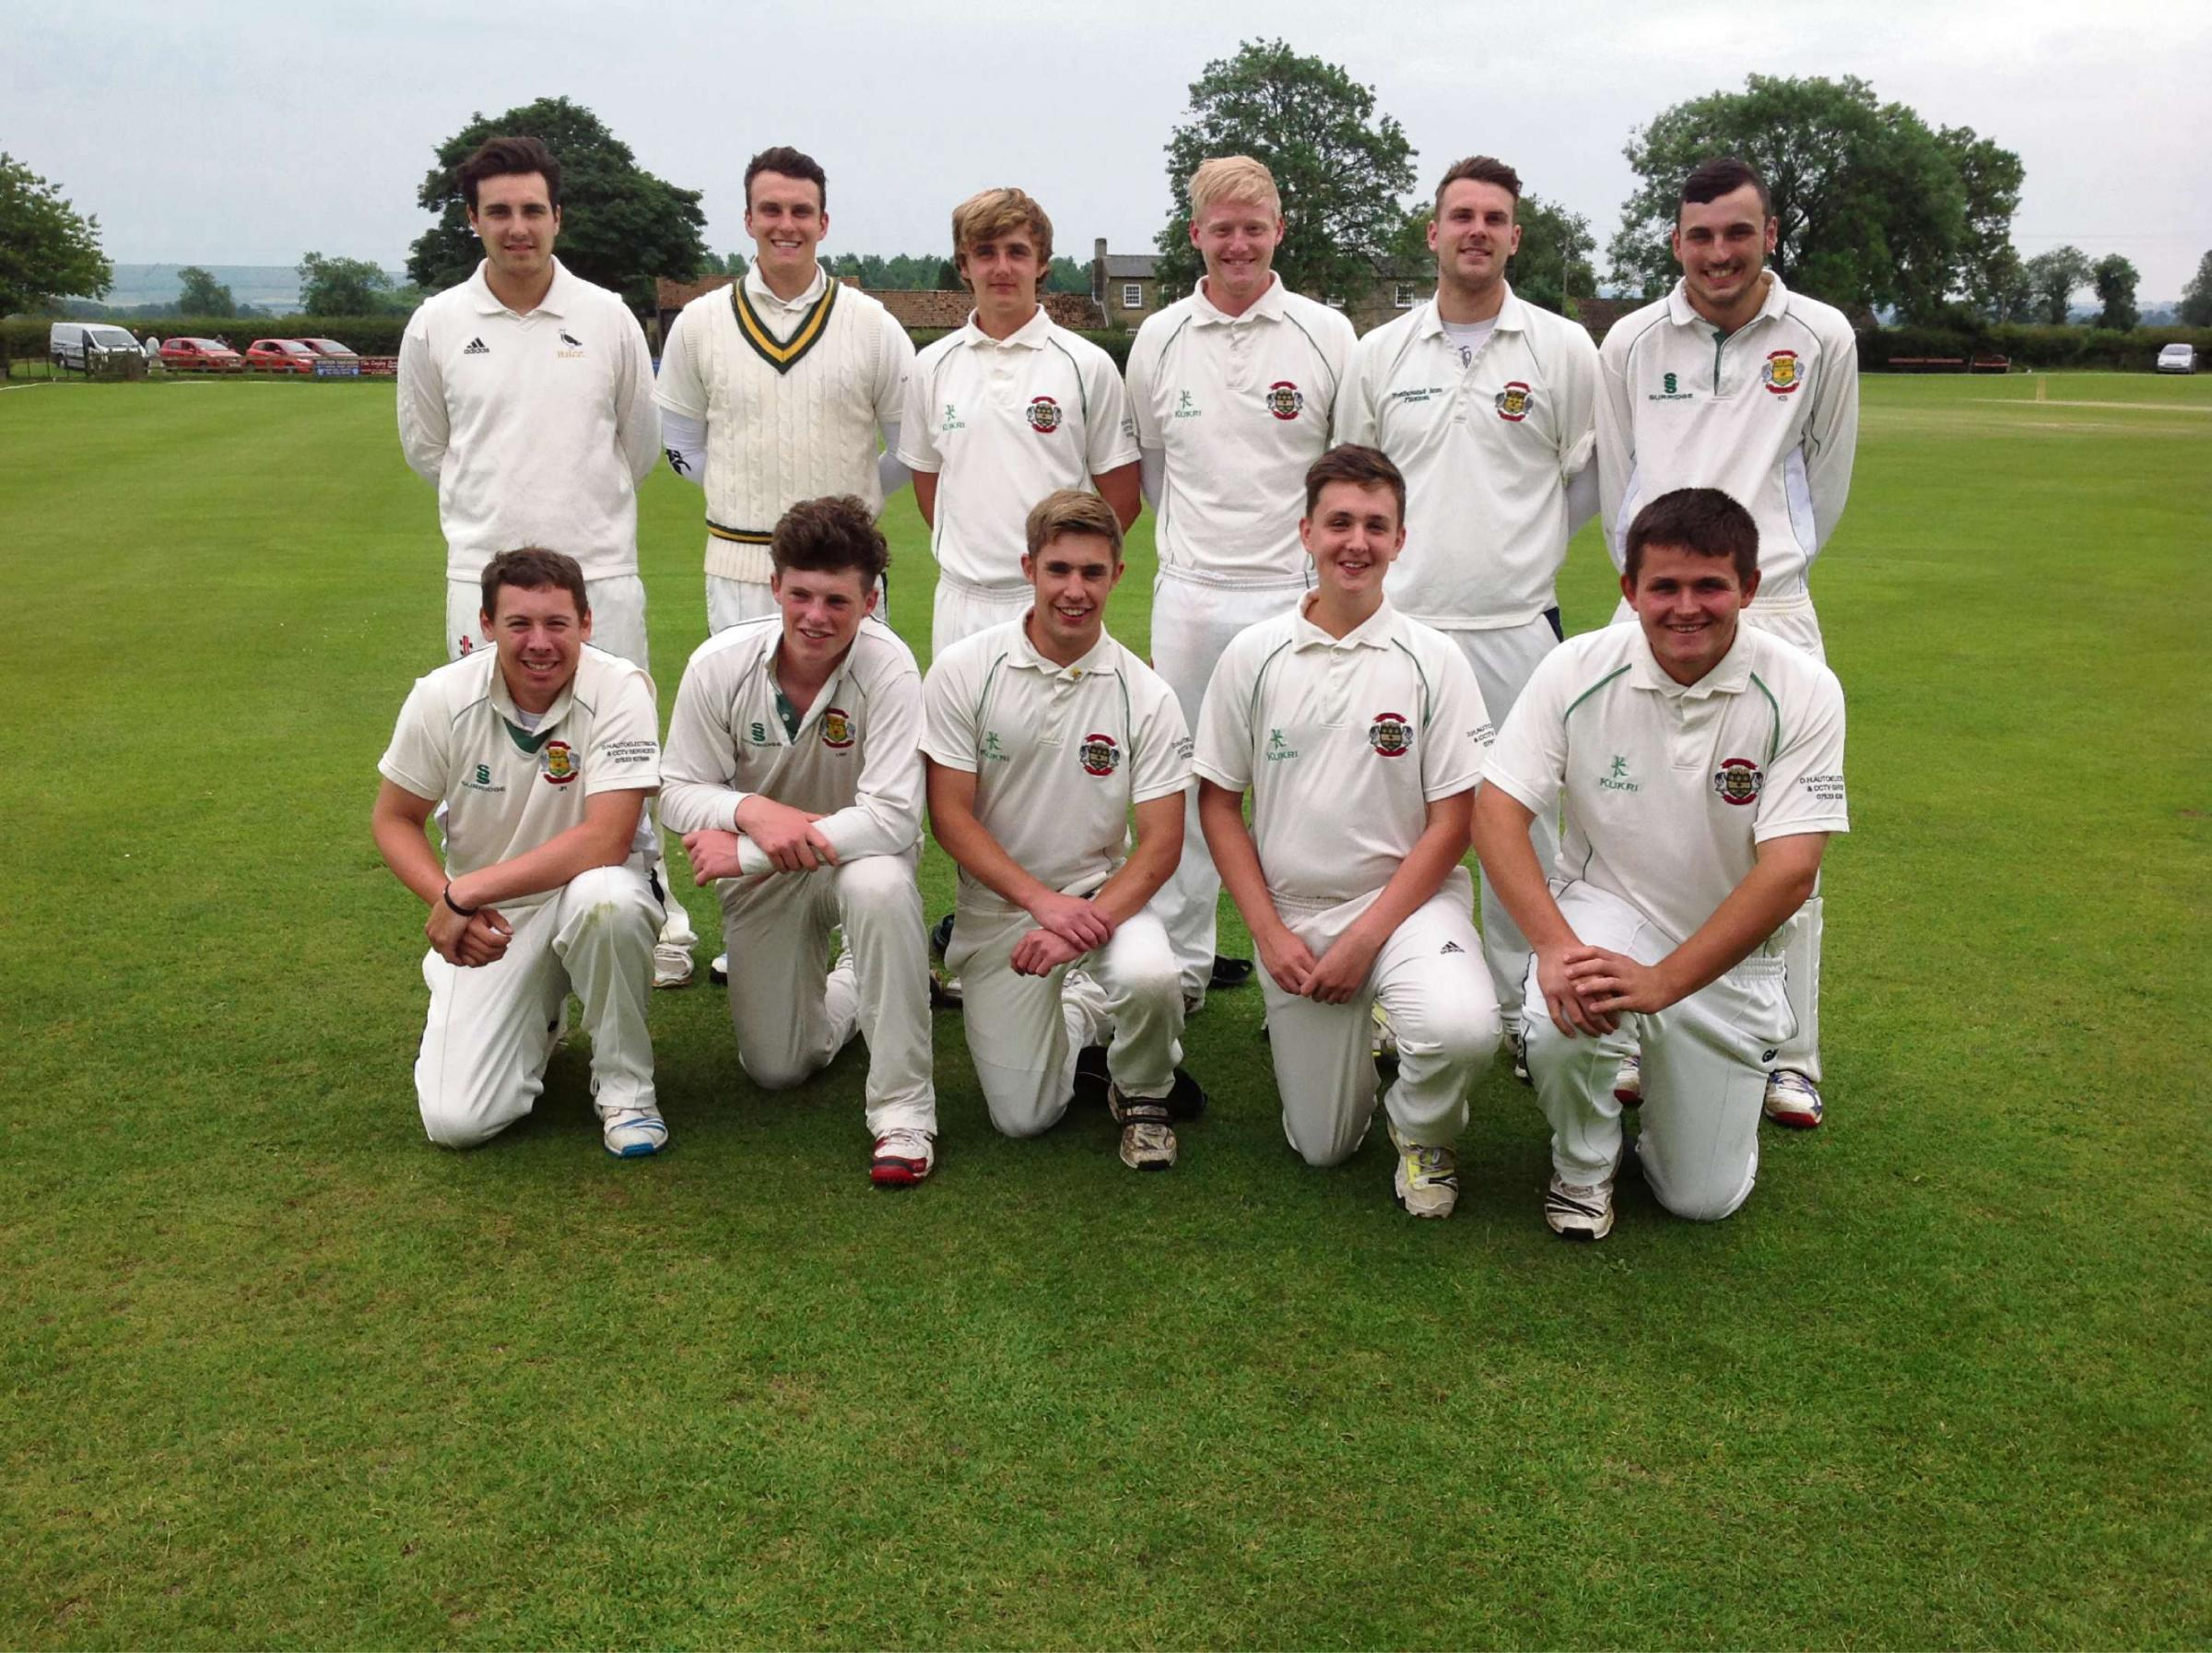 TROPHY HOLDERS: Flixton, finalists again in the Andy Hire Harburn Cup